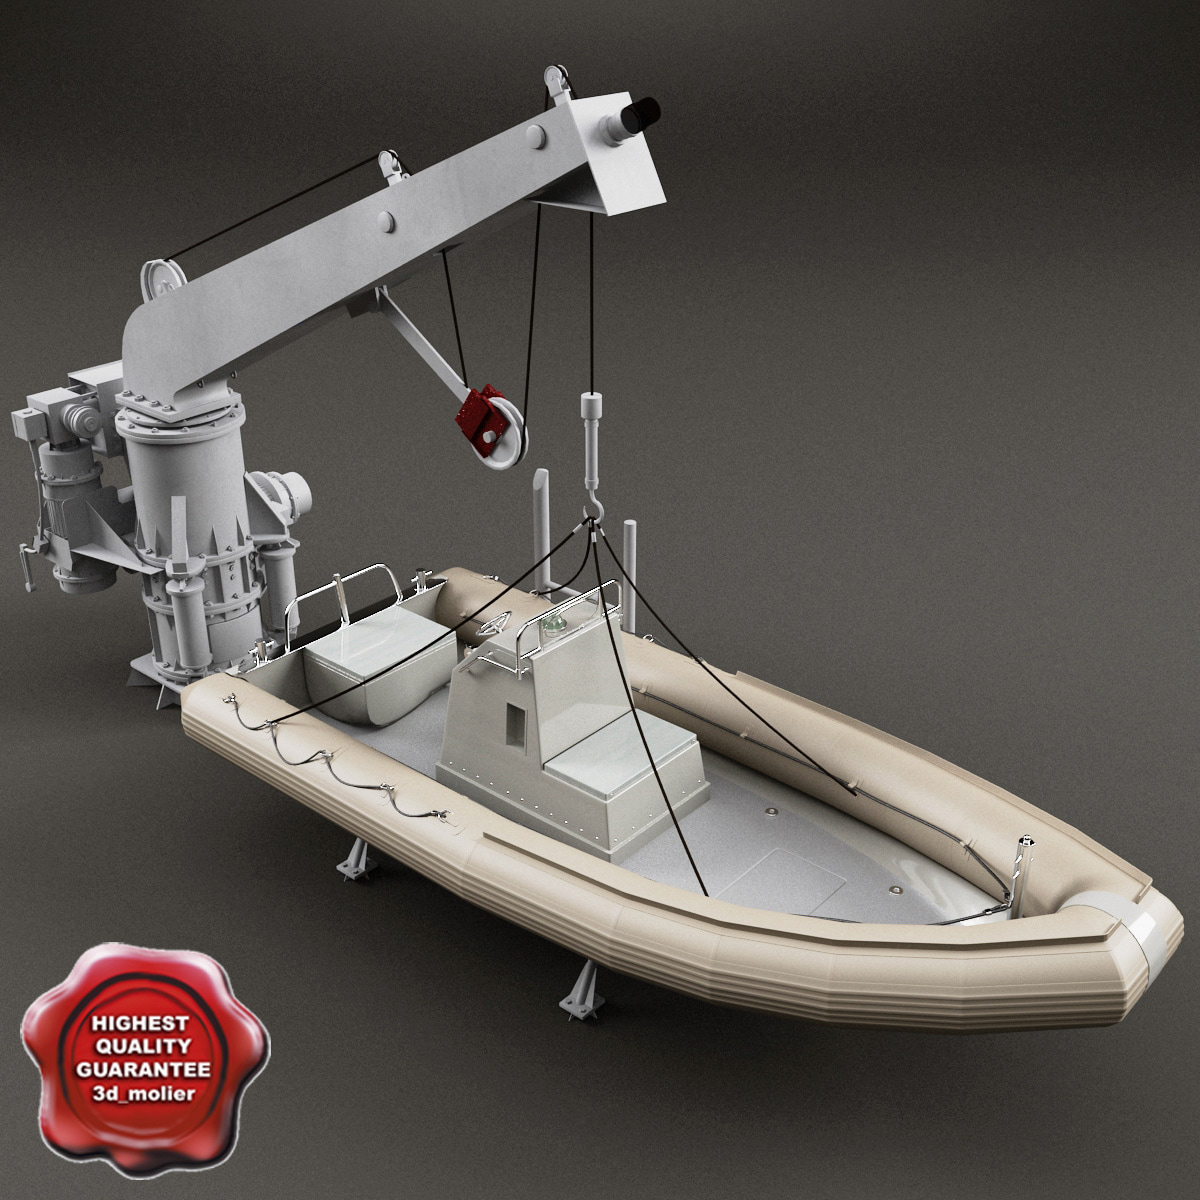 Boat_Davit_and_Rescue_Boat_00.jpg